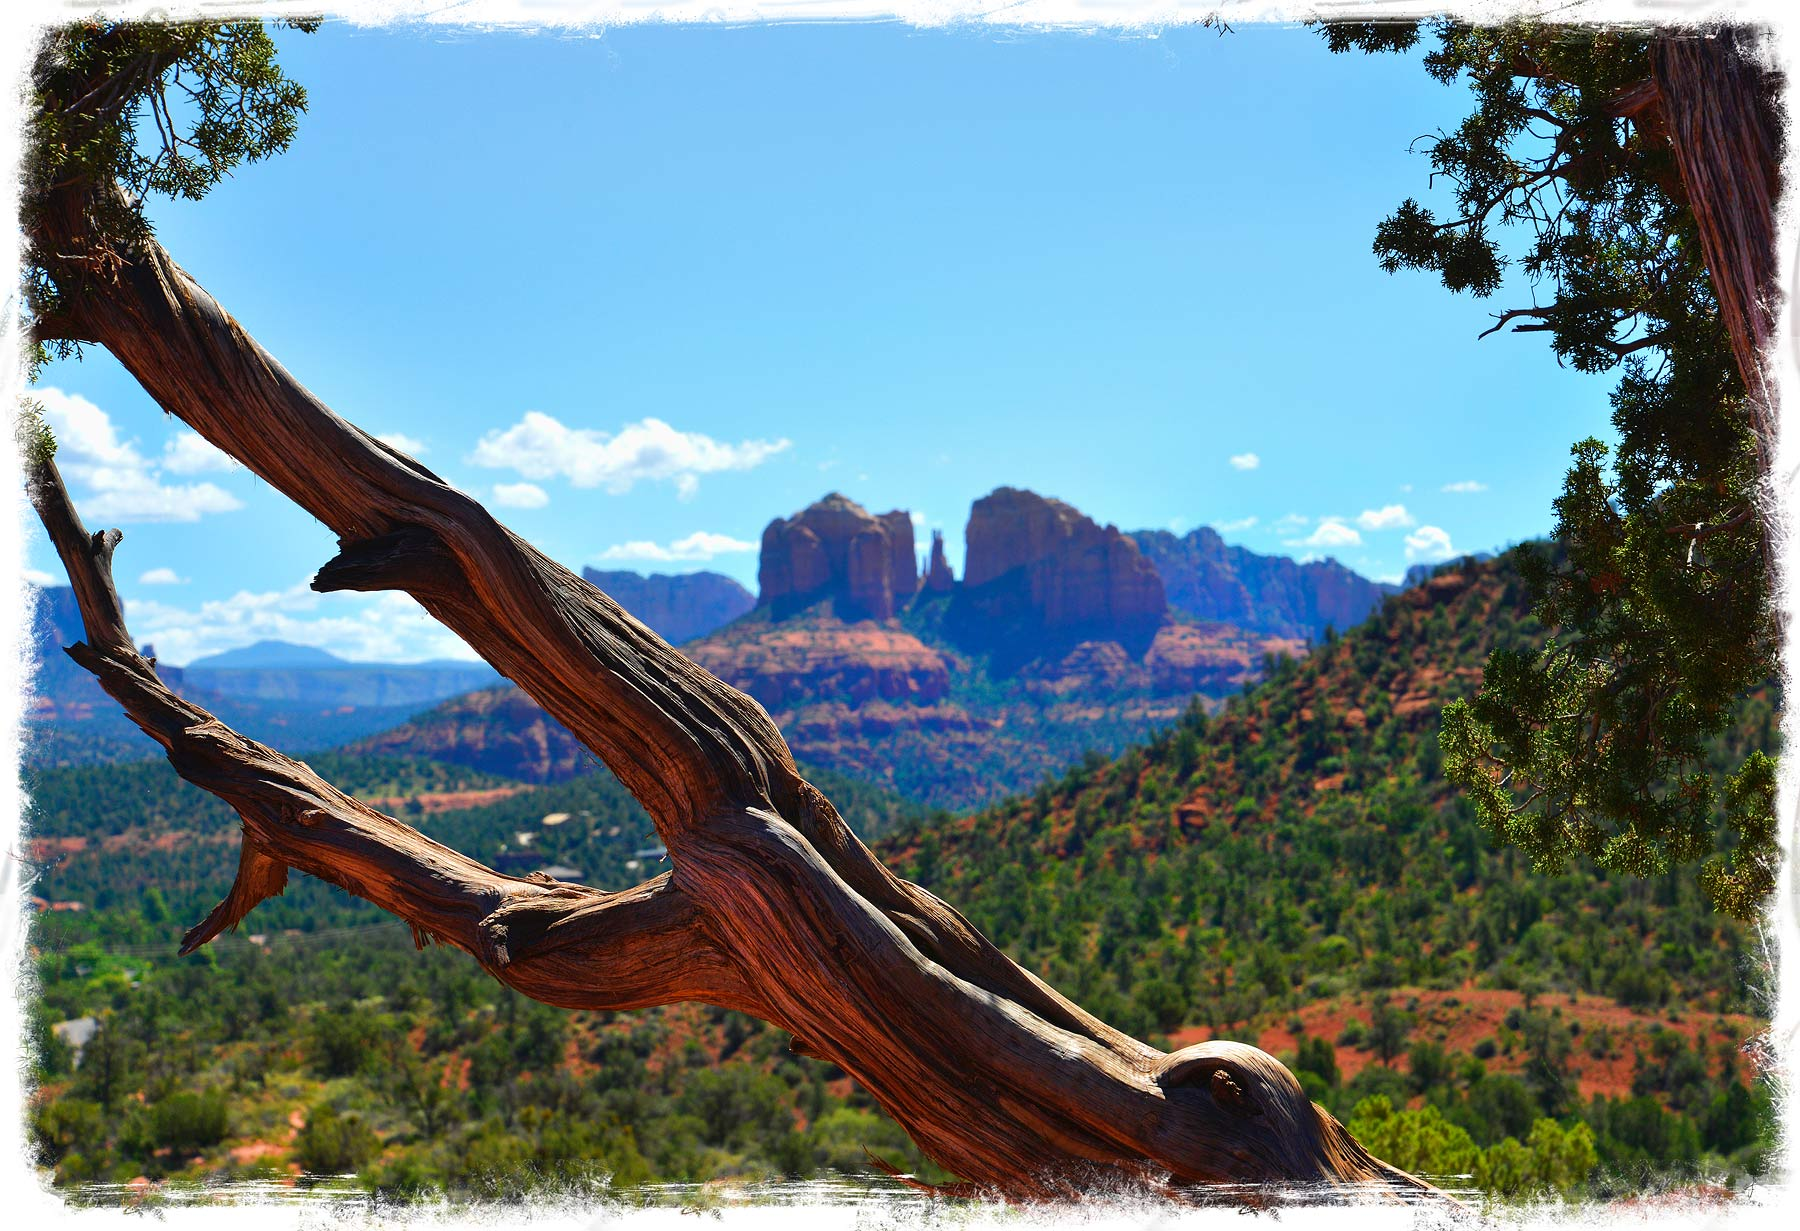 cypress tree in Sedona